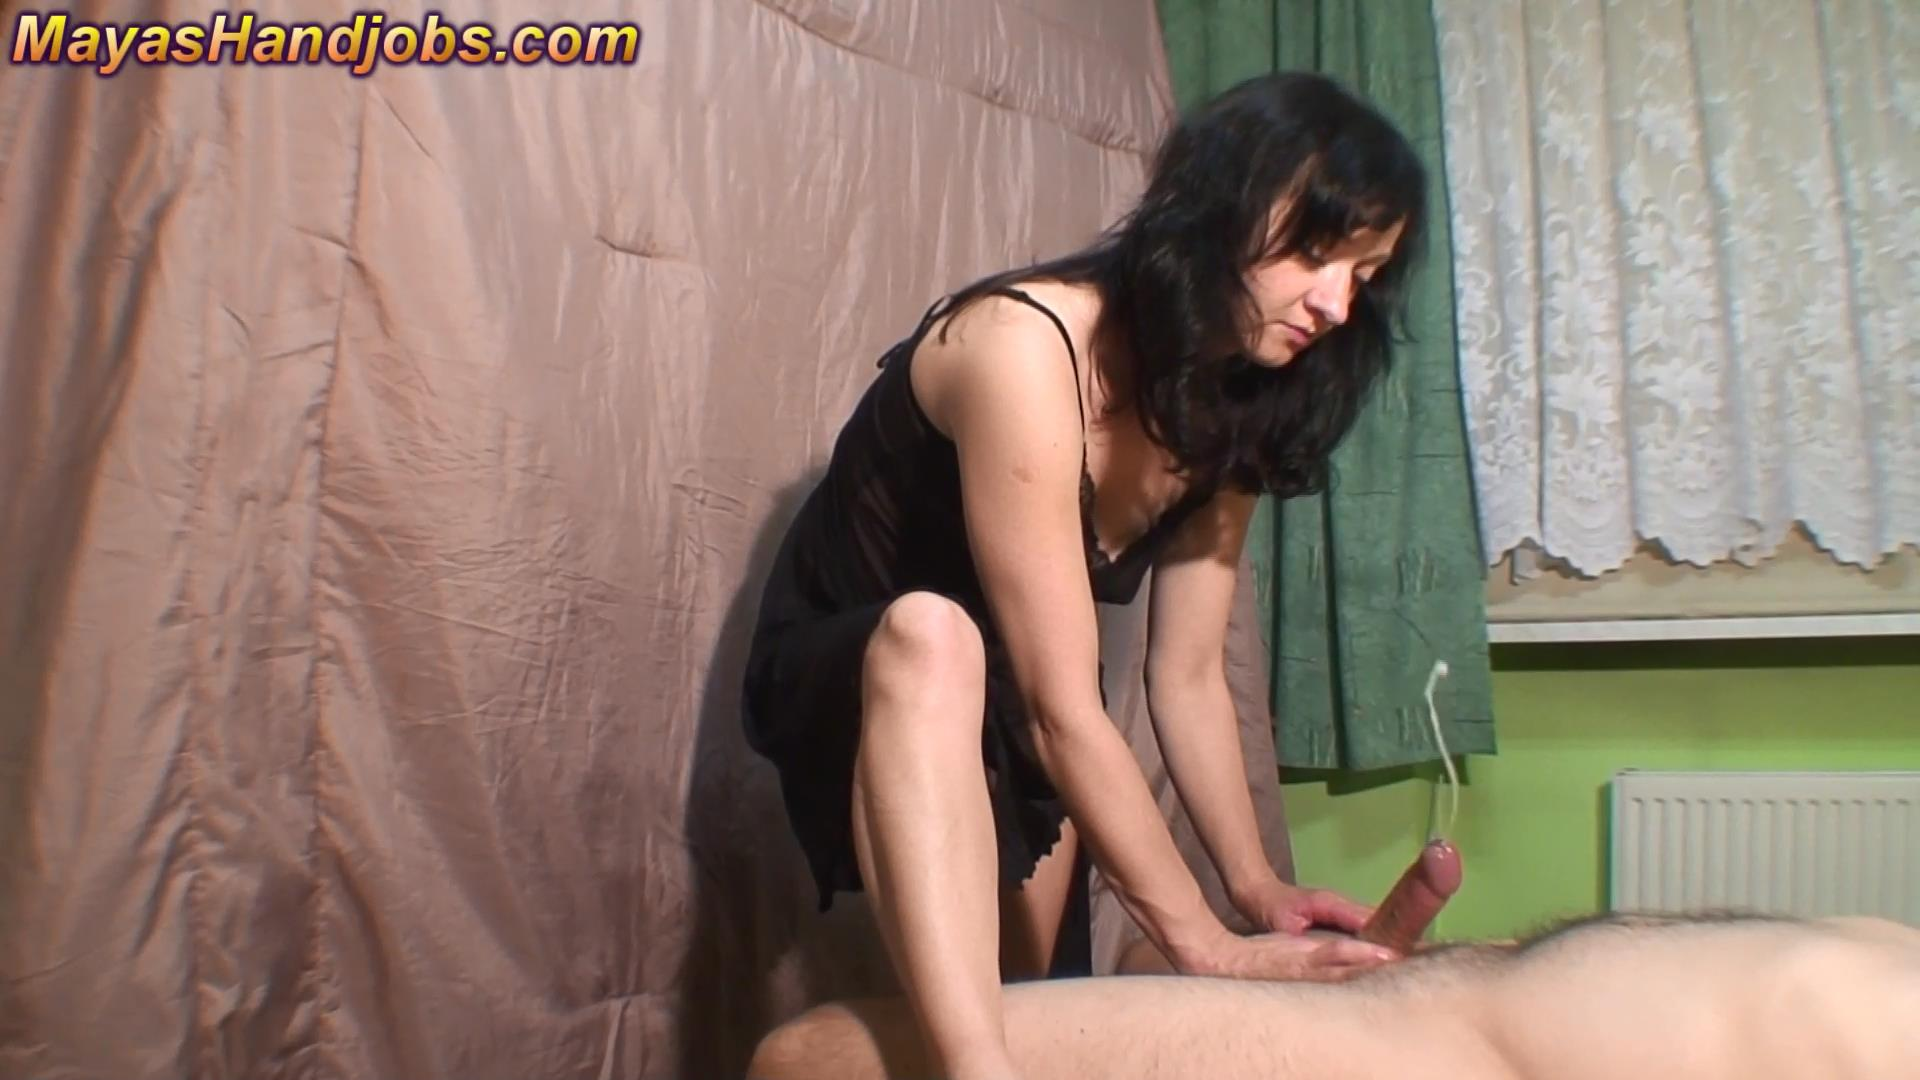 Mistress Maya In Scene: Good jerking in many positions results huge blasts - MAYASHANDJOBS - FULL HD/1080p/MP4